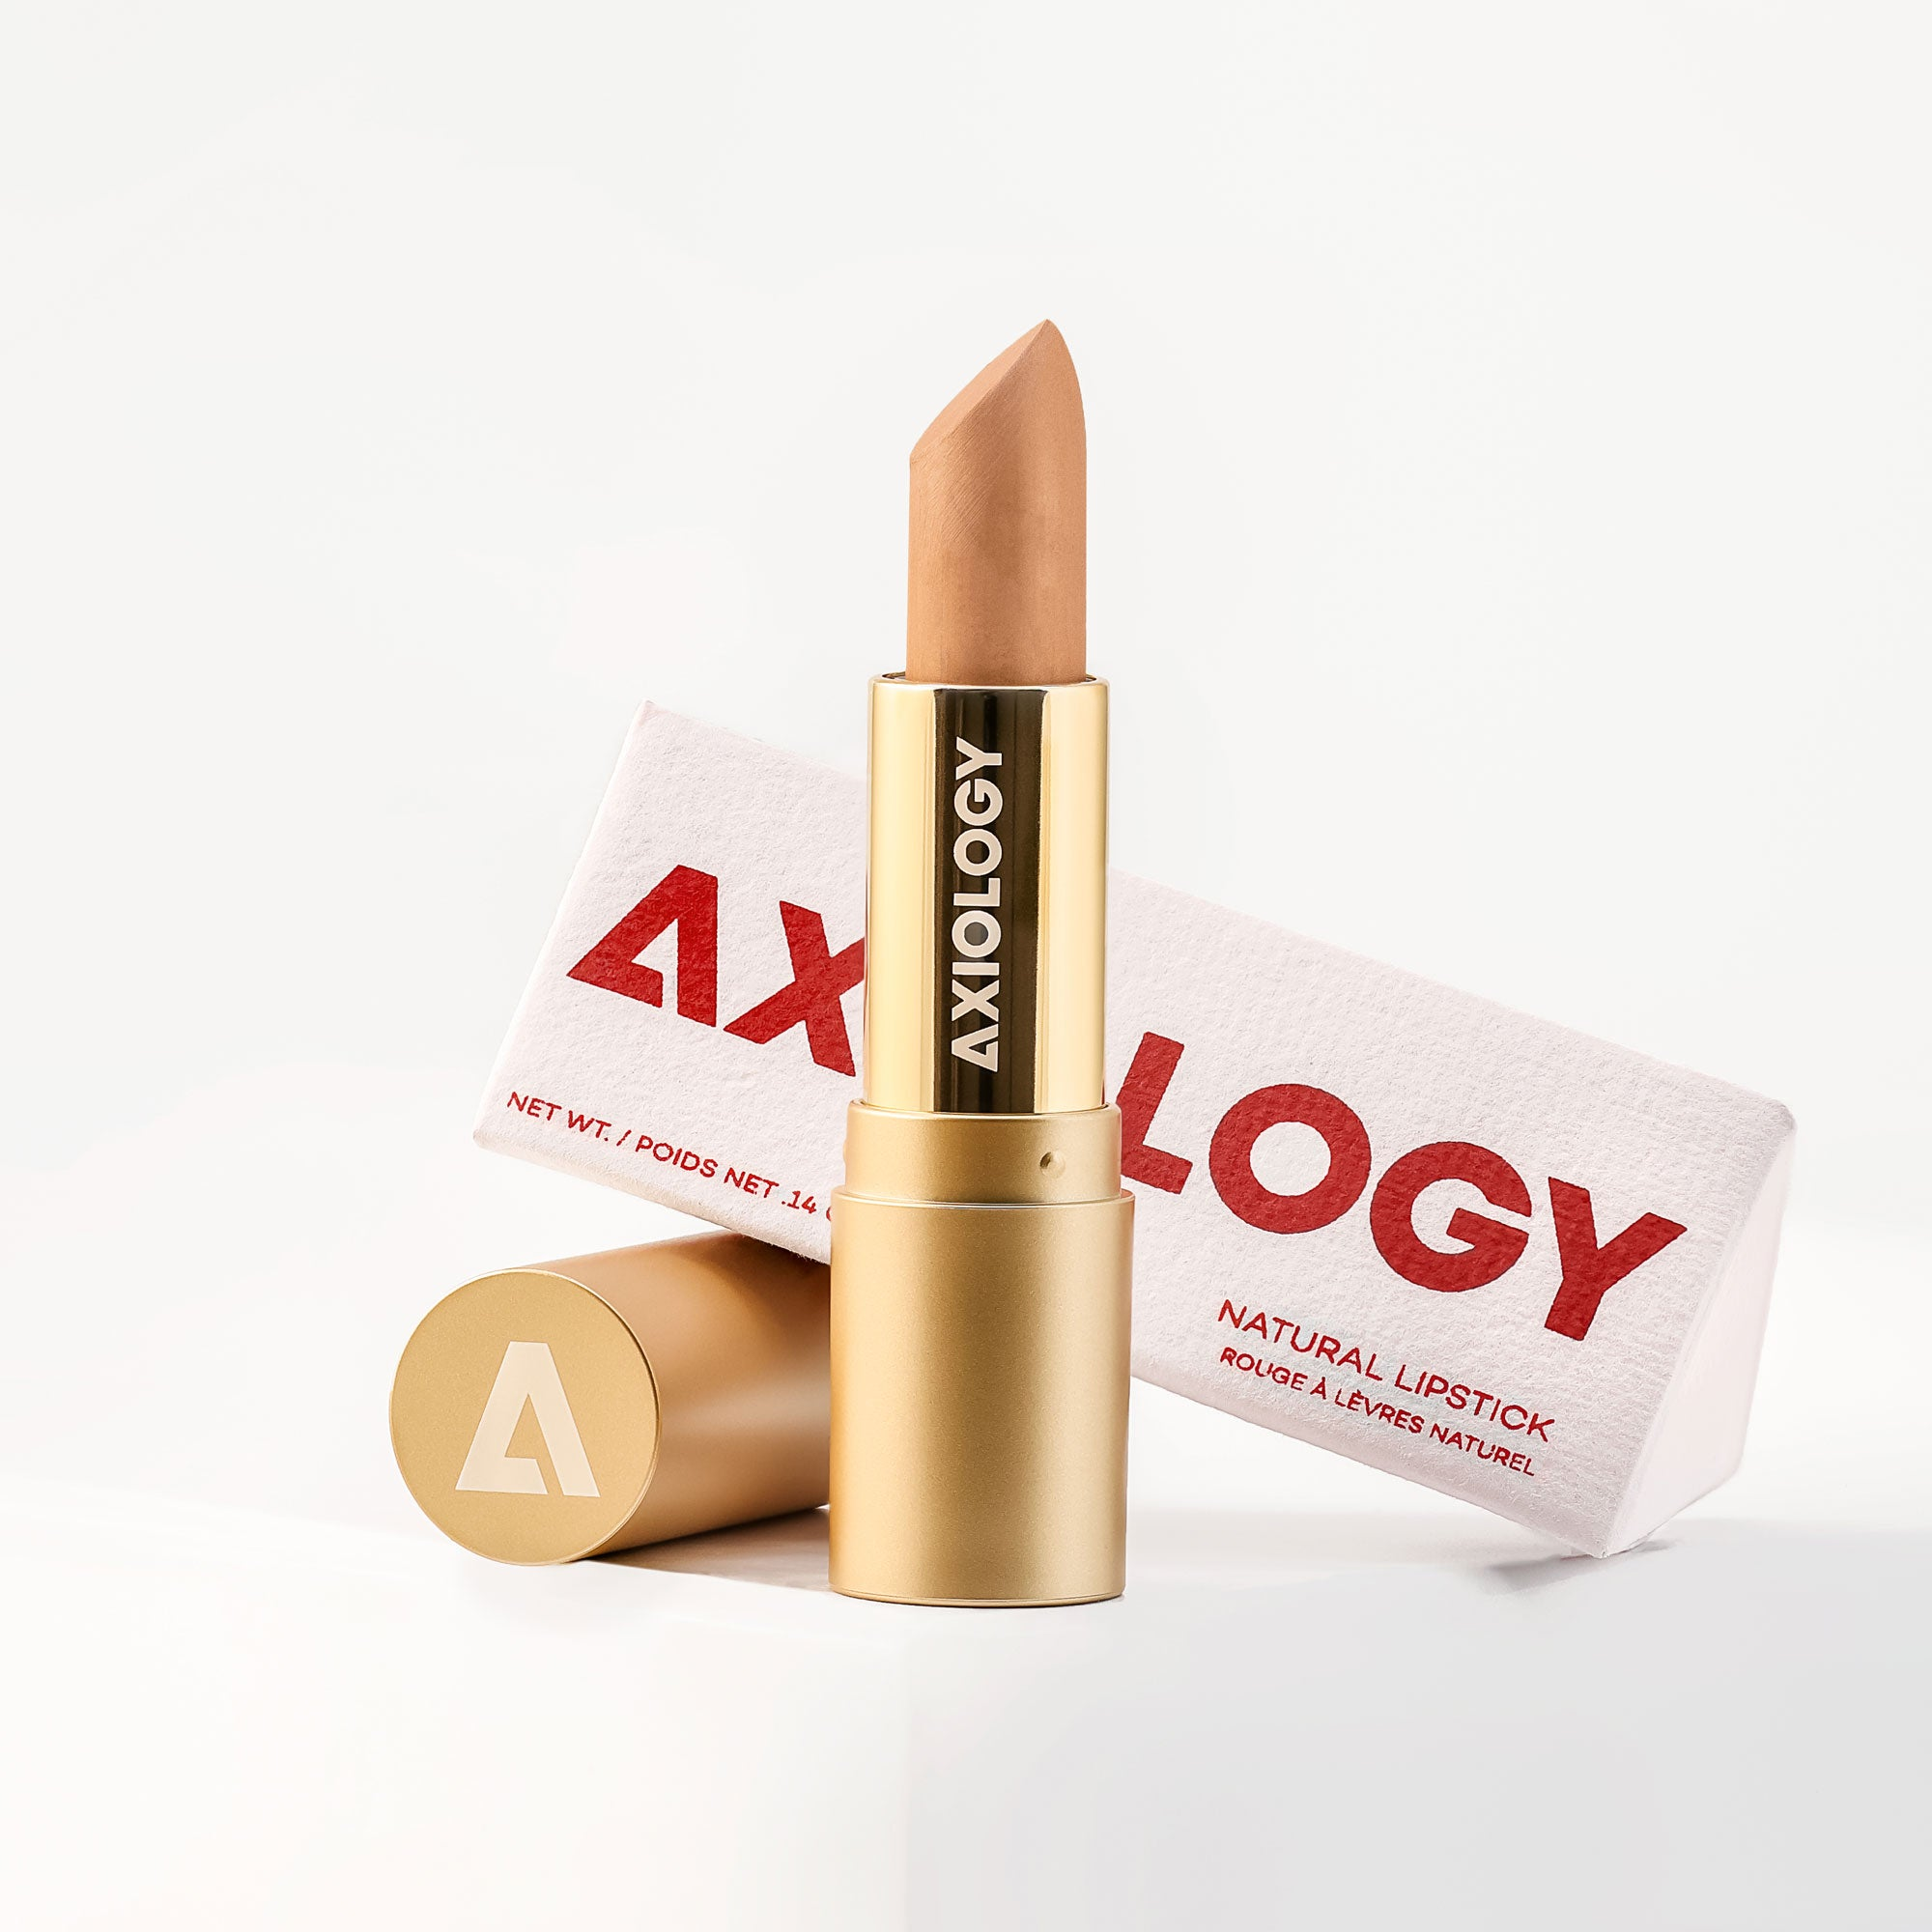 Axiology Beauty INSTINCT 2020